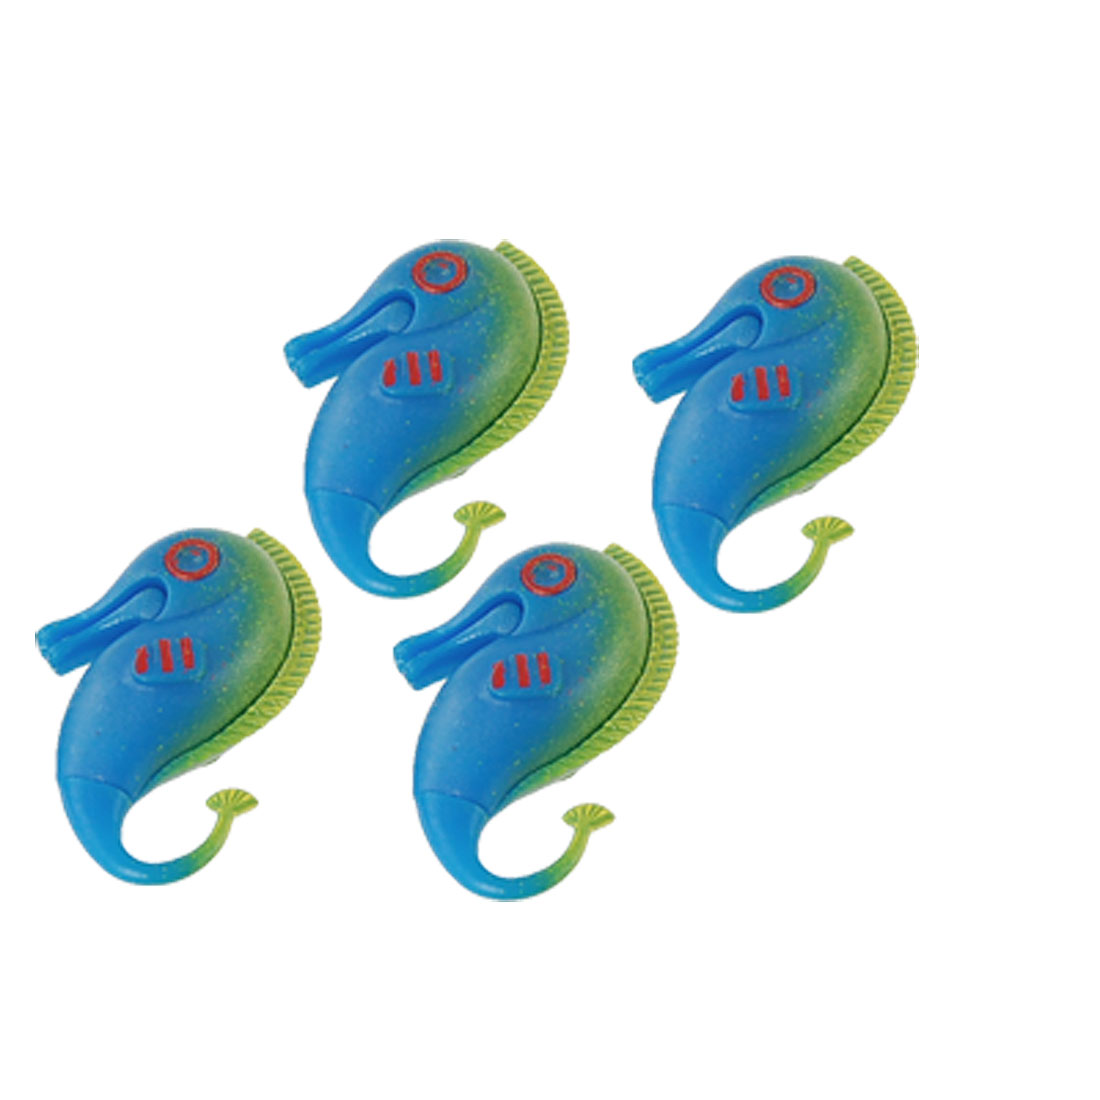 4 Pcs Aquarium Fish Tank Green Back Blue Plastic Hippocampi Decoration